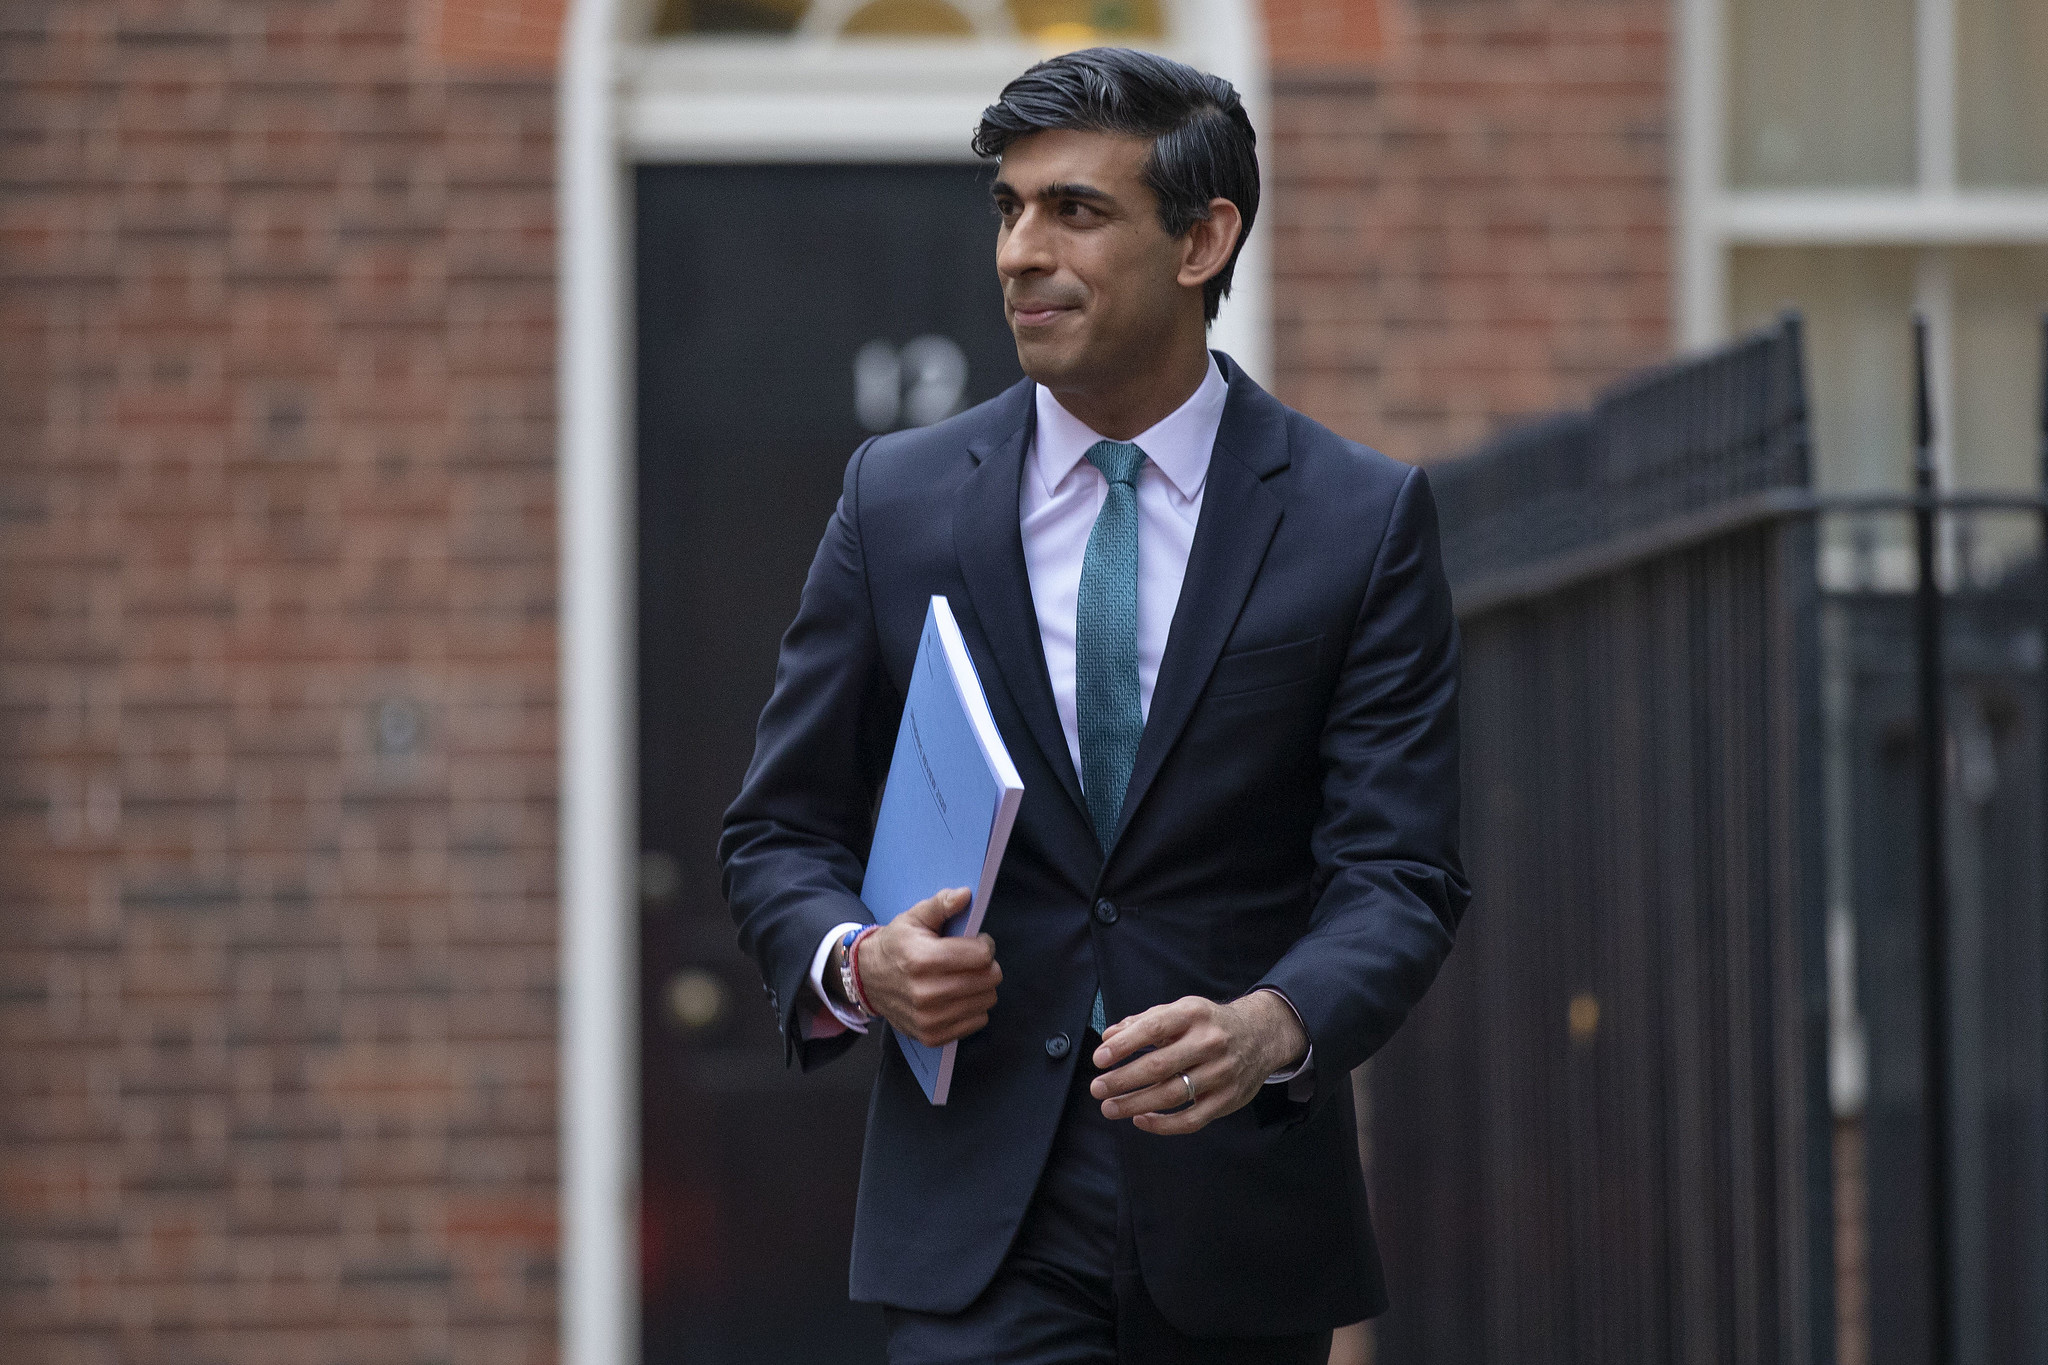 Rishi Sunak ignores small business and self-employed in Spending Review